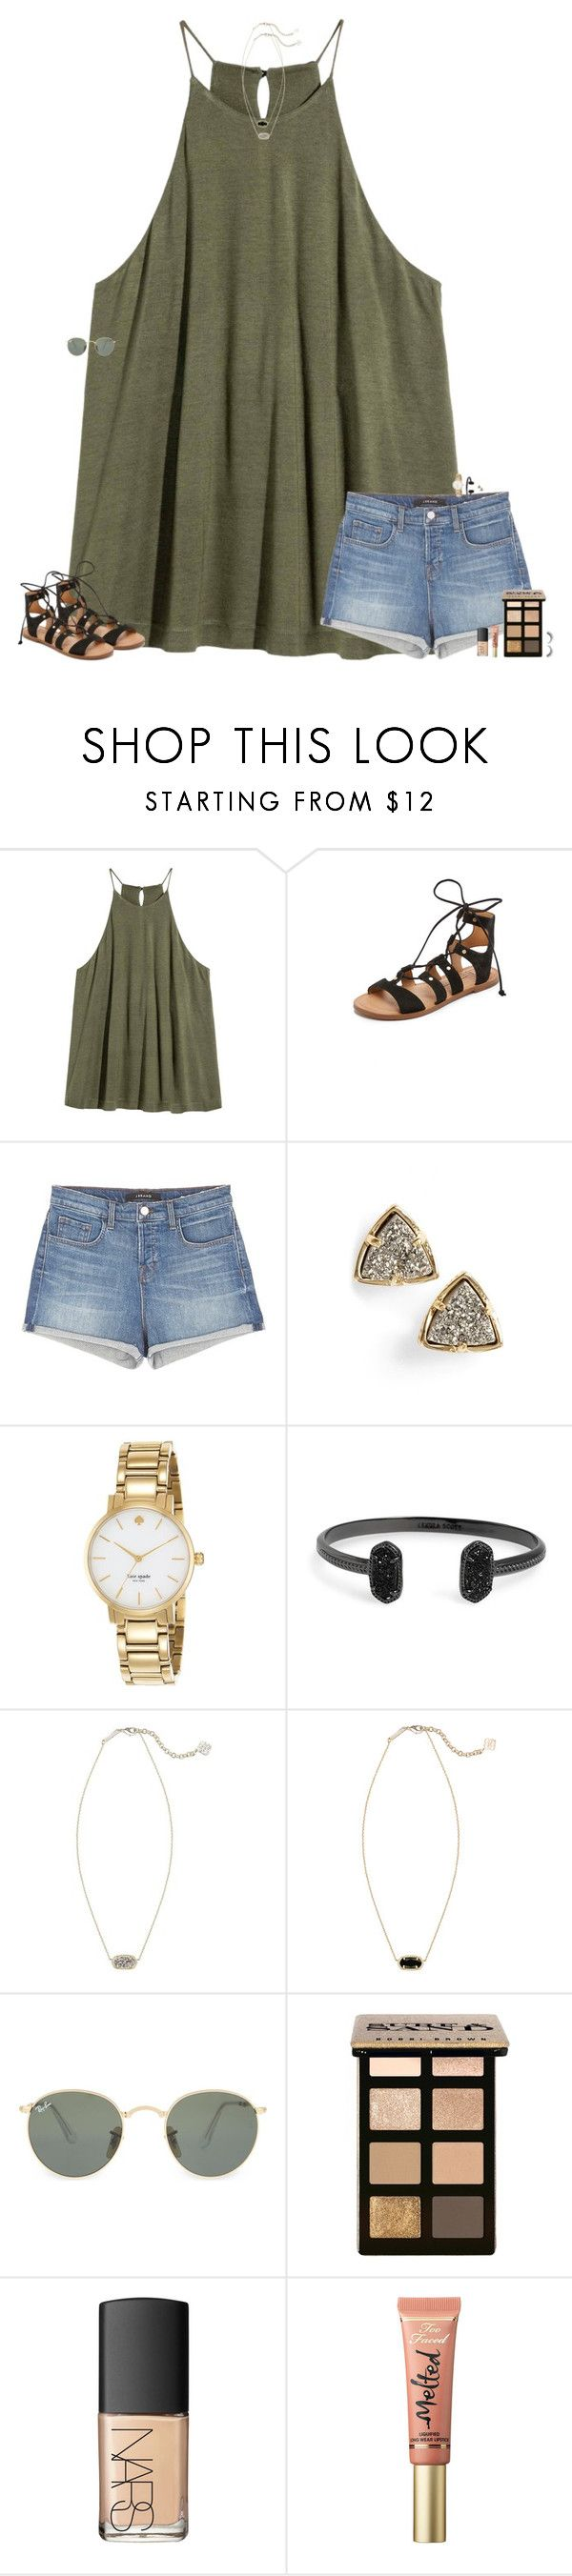 """""""So ready for summer"""" by maggie-prep ❤ liked on Polyvore featuring Dolce Vita, J Brand, Kendra Scott, Kate Spade, Ray-Ban, Bobbi Brown Cosmetics, NARS Cosmetics and Too Faced Cosmetics"""